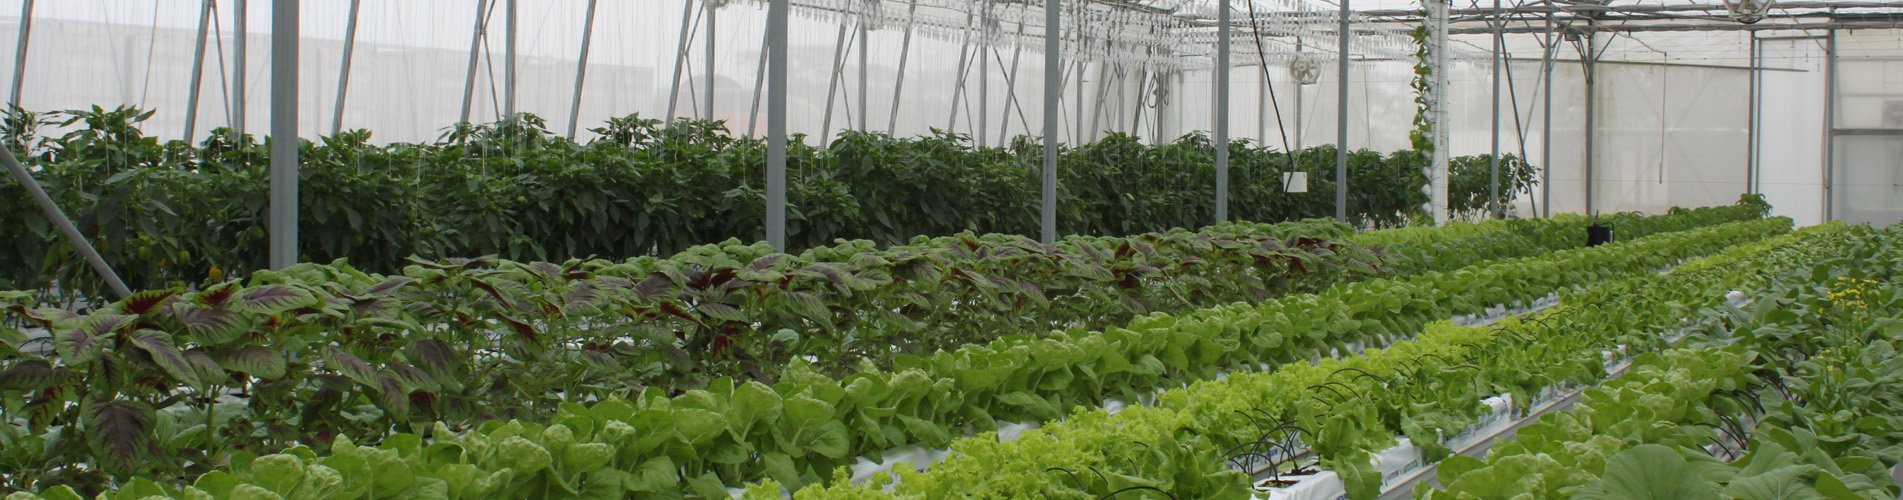 Sustainable and high-tech greenhouse